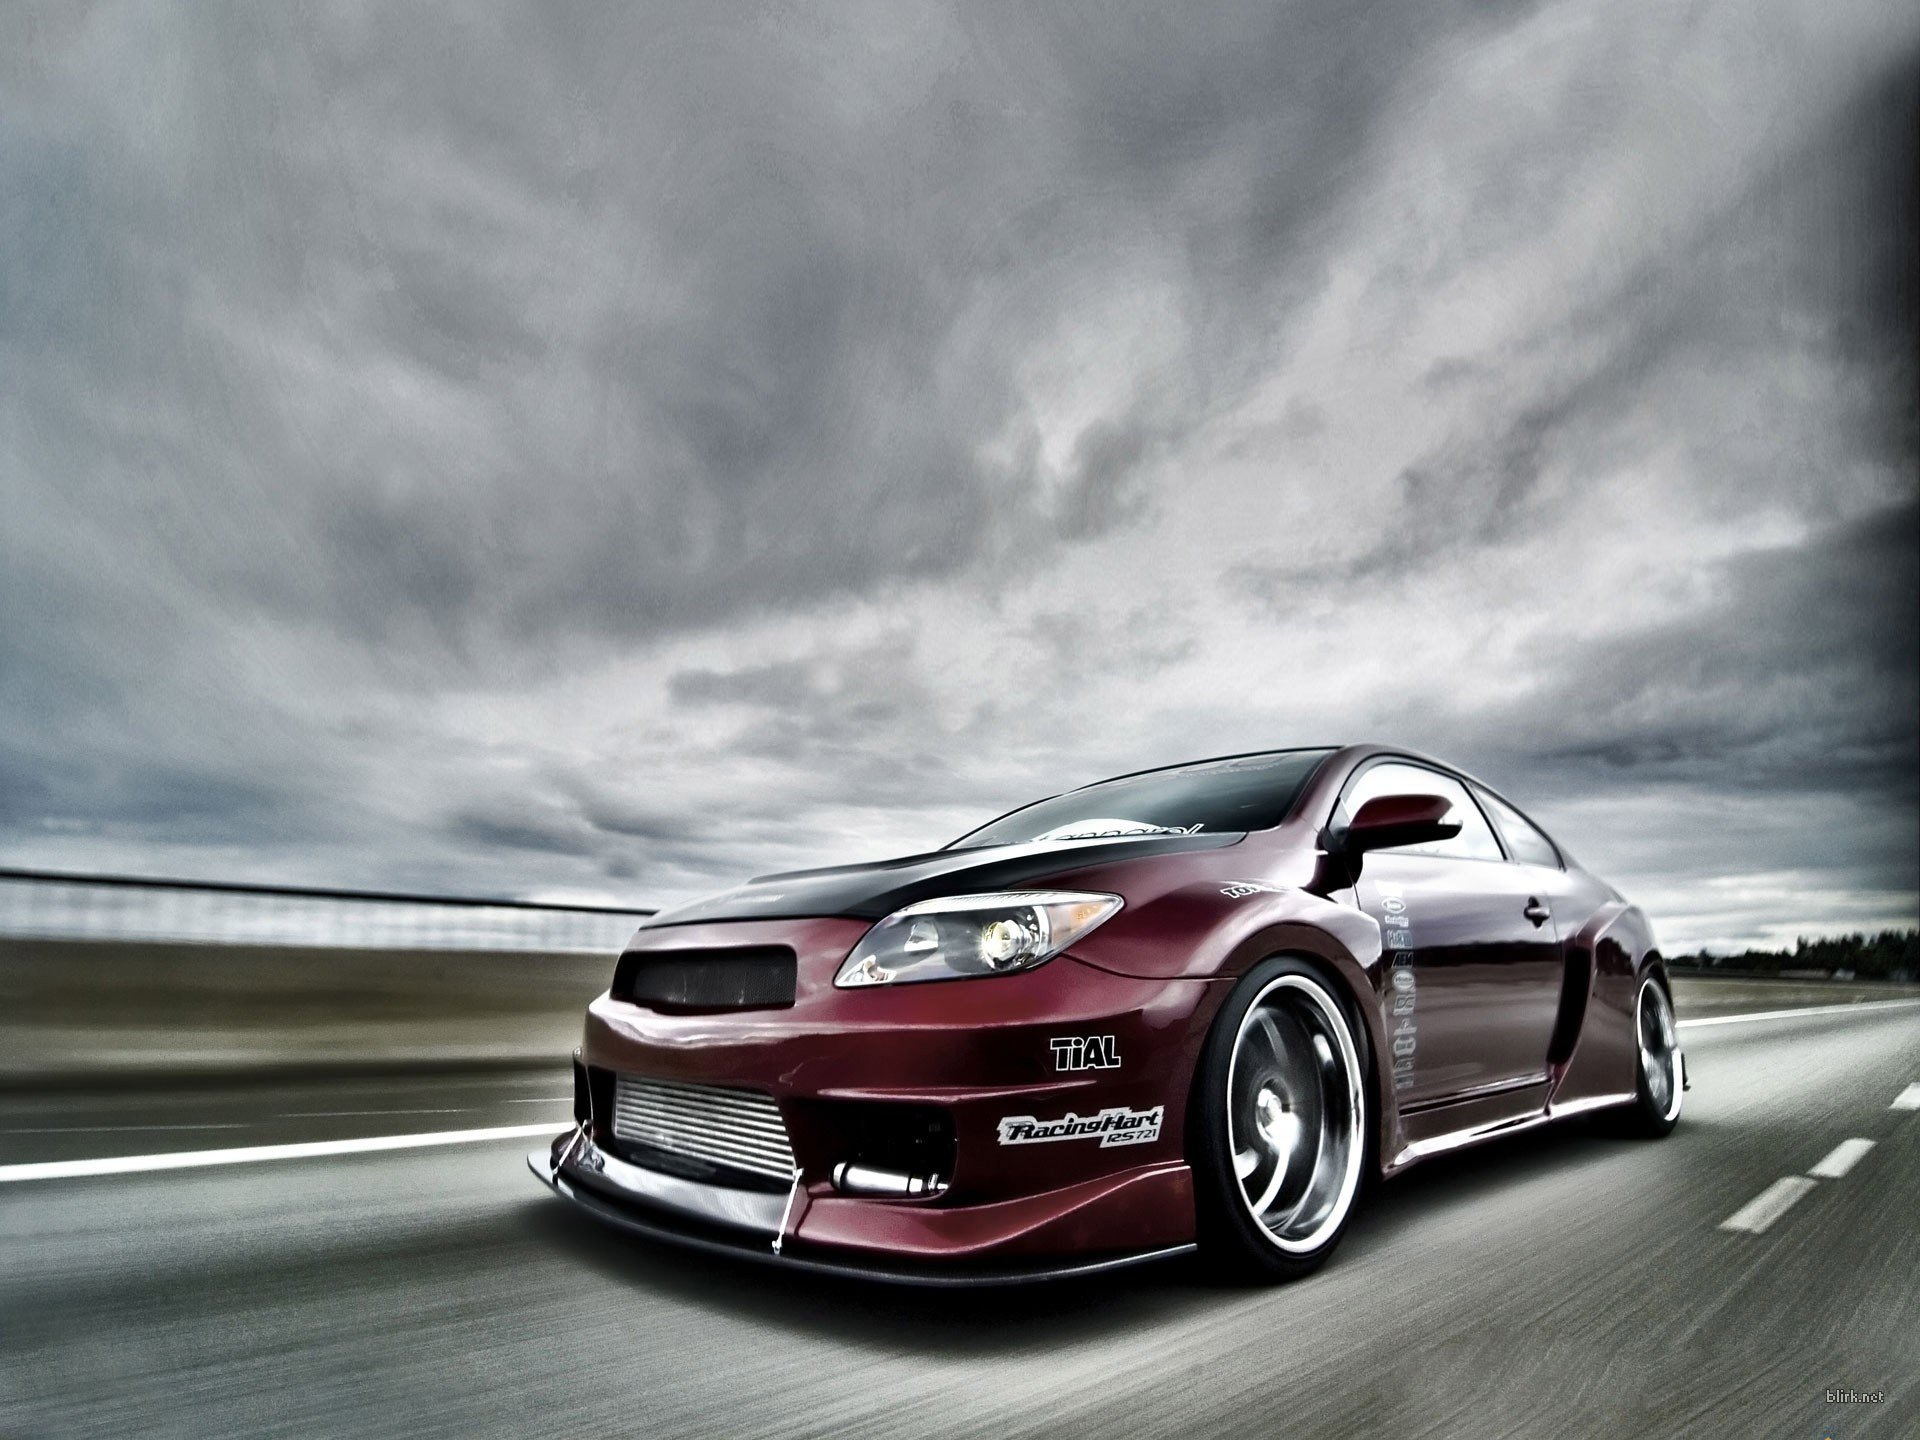 New Over 40 Hd Stunning Toyota Wallpaper Images For Free Download On This Month